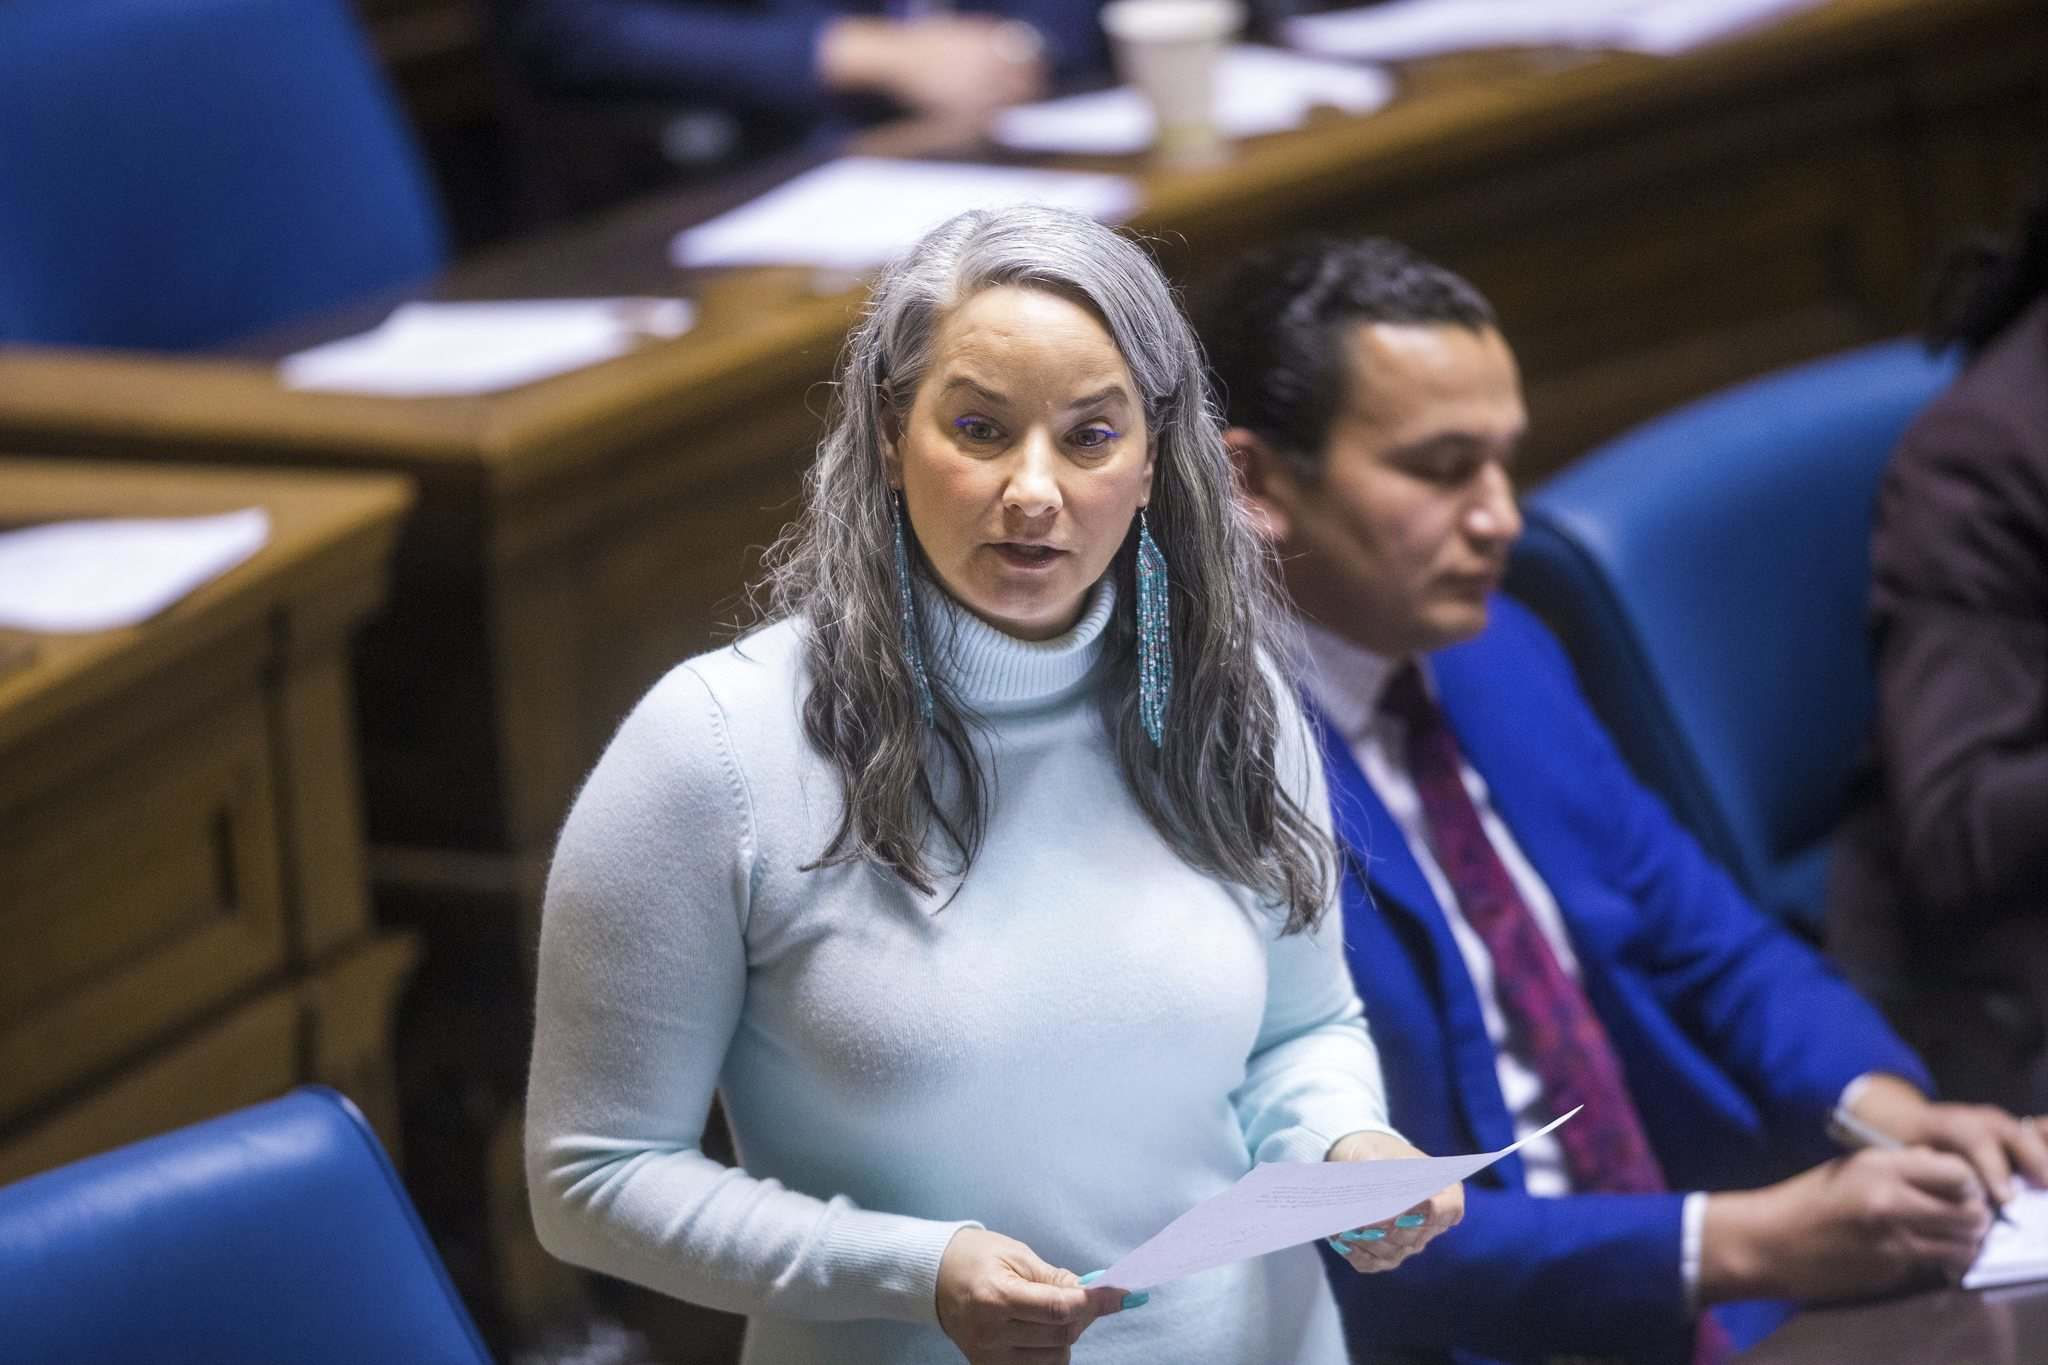 The in-custody death reports are years out of date, says NDP MLA Nahanni Fontaine. (Mikaela MacKenzie / Winnipeg Free Press files)